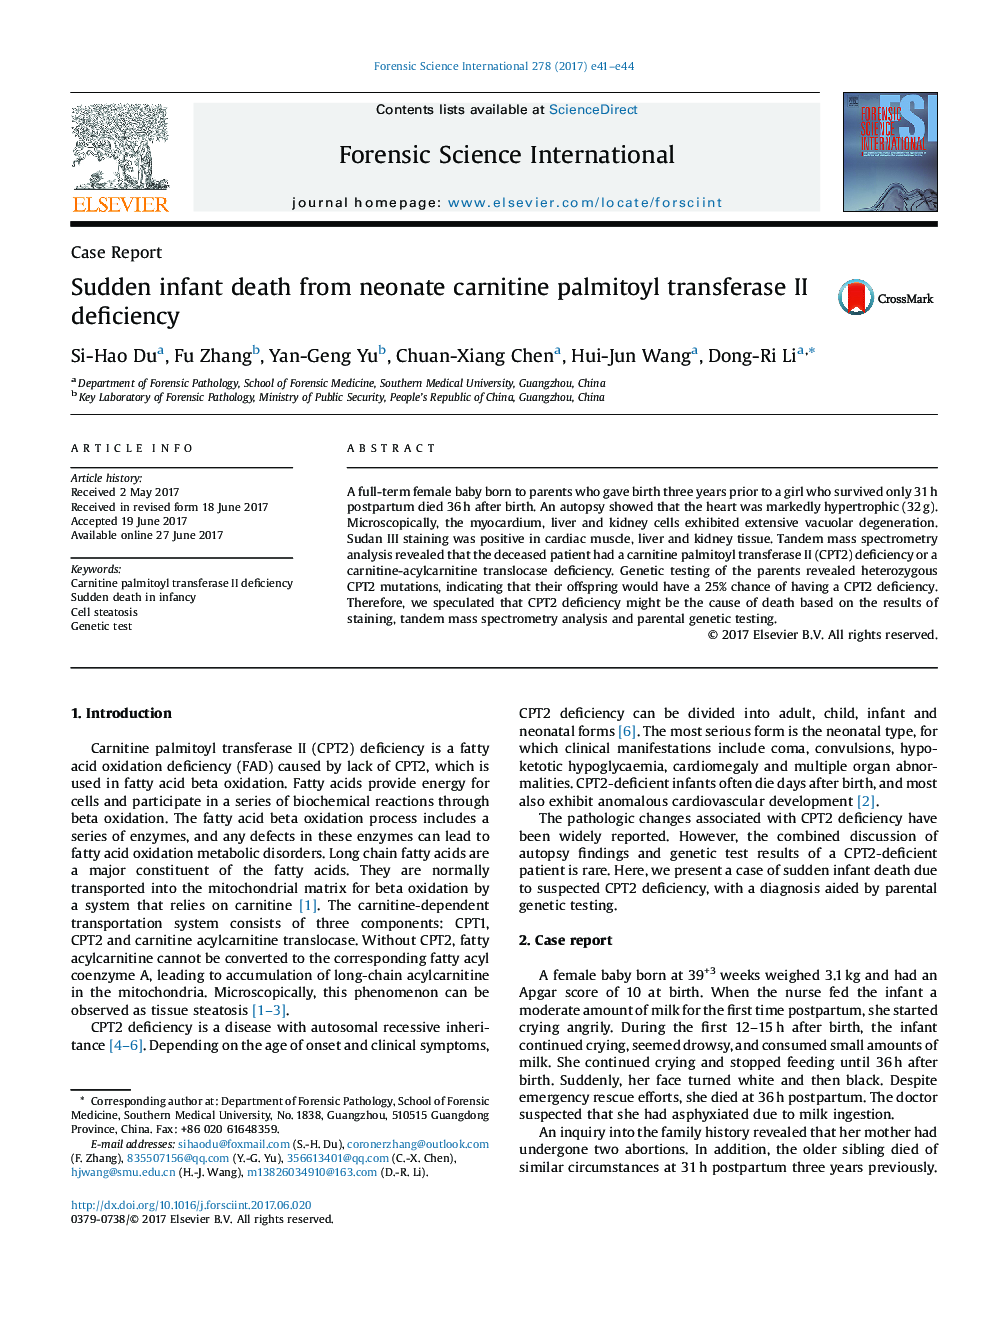 Sudden infant death from neonate carnitine palmitoyl transferase II deficiency